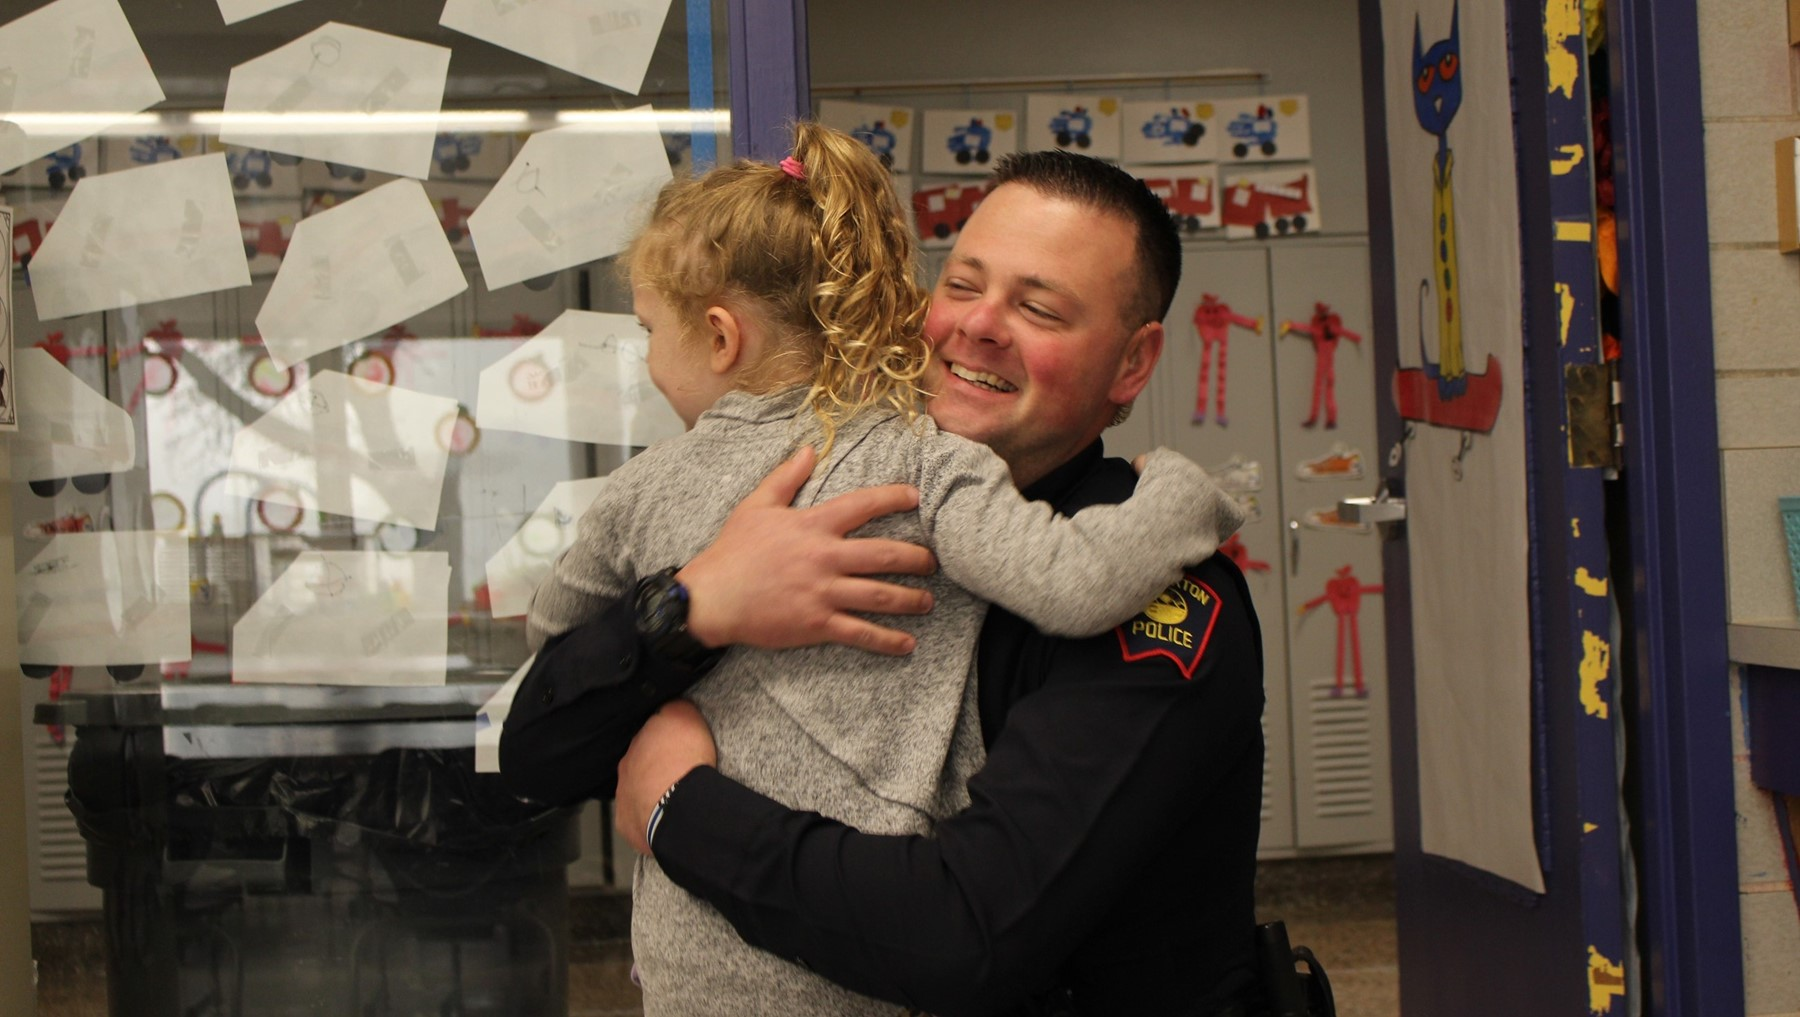 School Resource Officers protect and mentor students in each of our buildings.